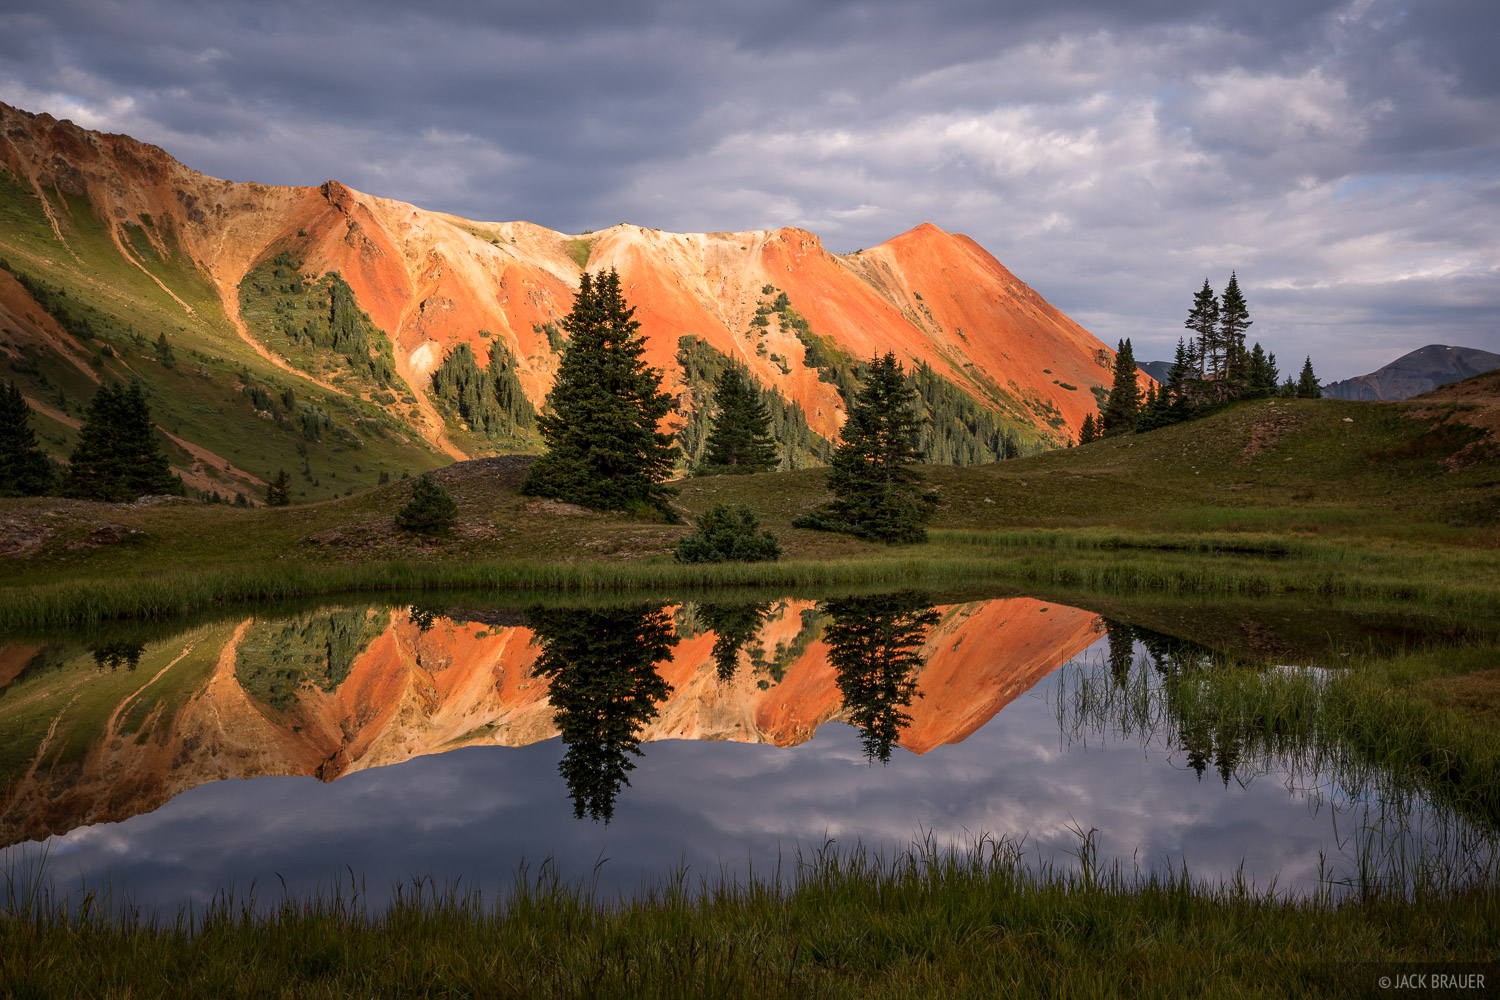 Red Mountain #1 reflects in an alpine tarn at sunrise.